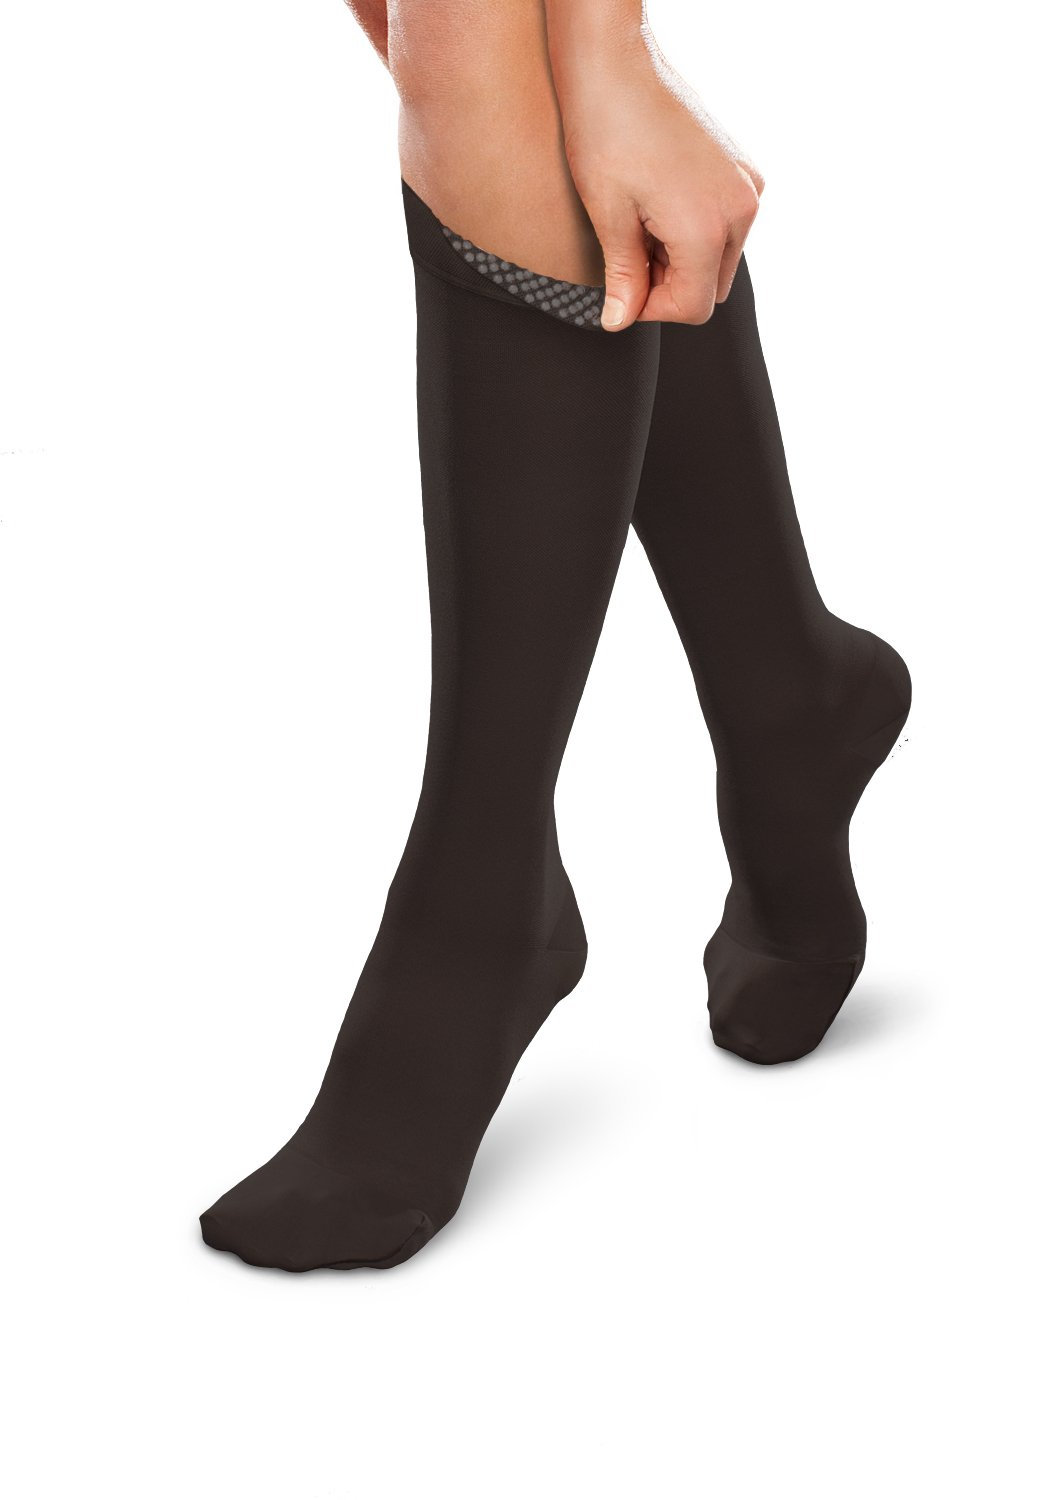 EASE 20-30 UNISEX KNEE HIGH w/SILICONE BAND